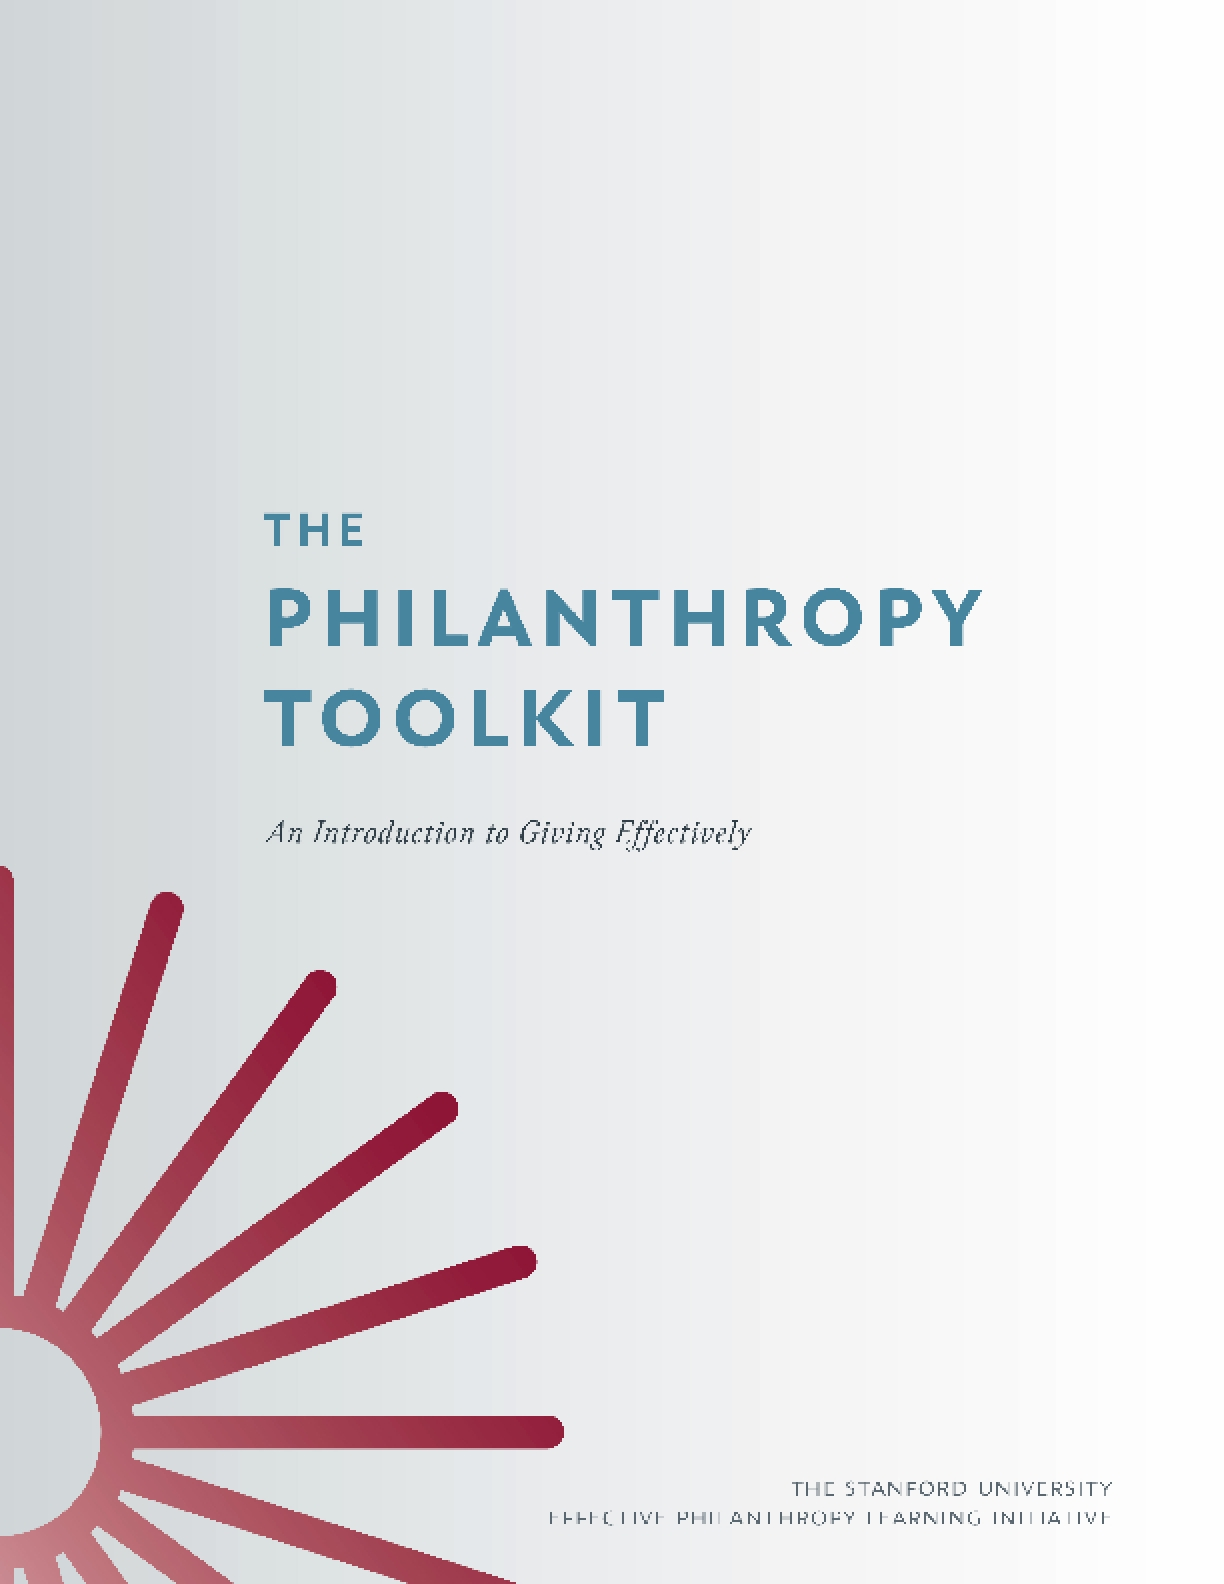 The Philanthropy Toolkit: An Introduction to Giving Effectively